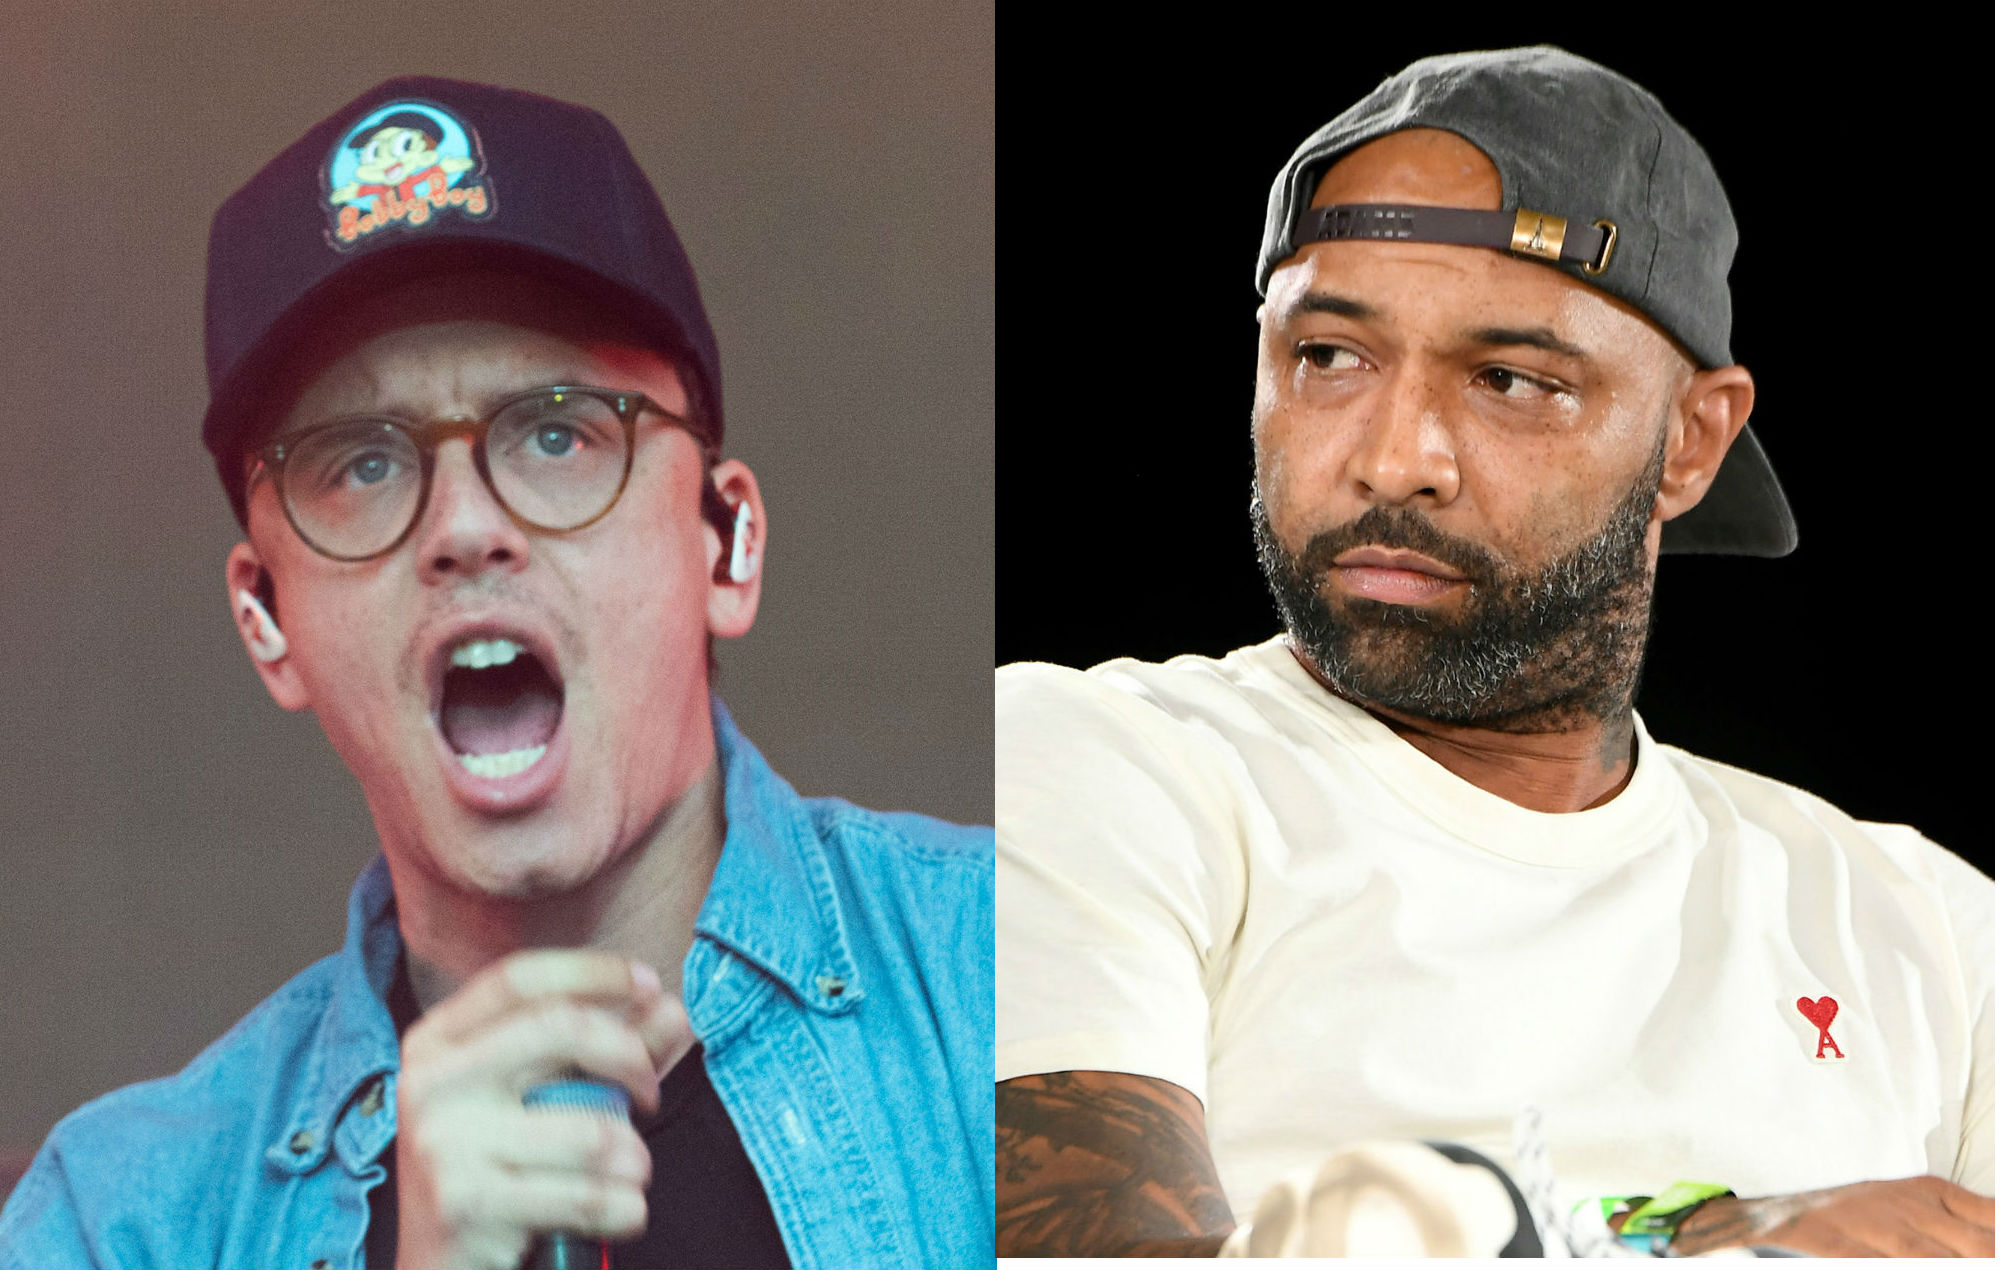 Joe Budden Calls Logic One Of The Worst Rappers To Ever Grace A Microphone